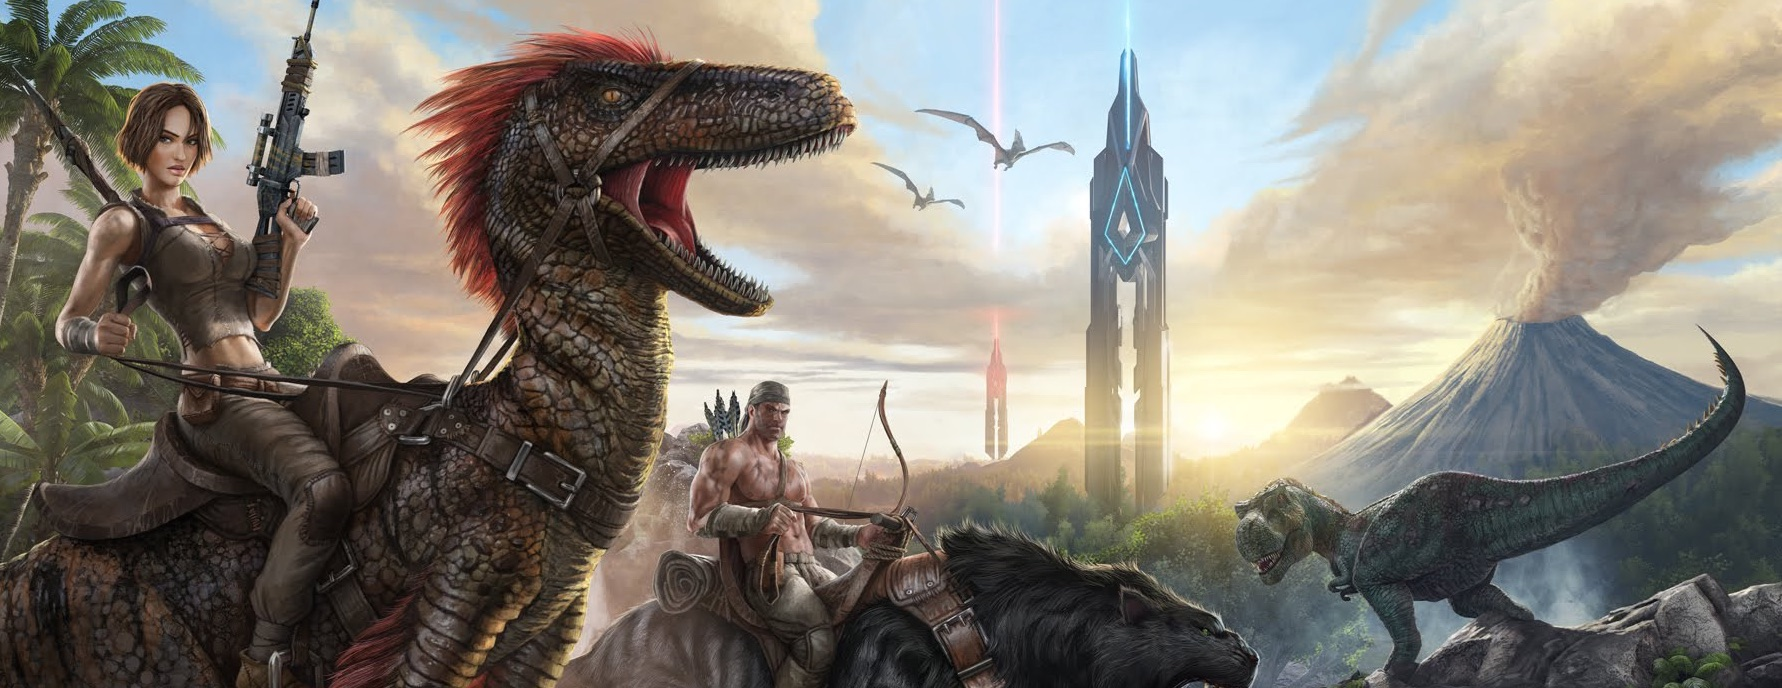 Survive ARK Companion app released on Android - Survive ARK